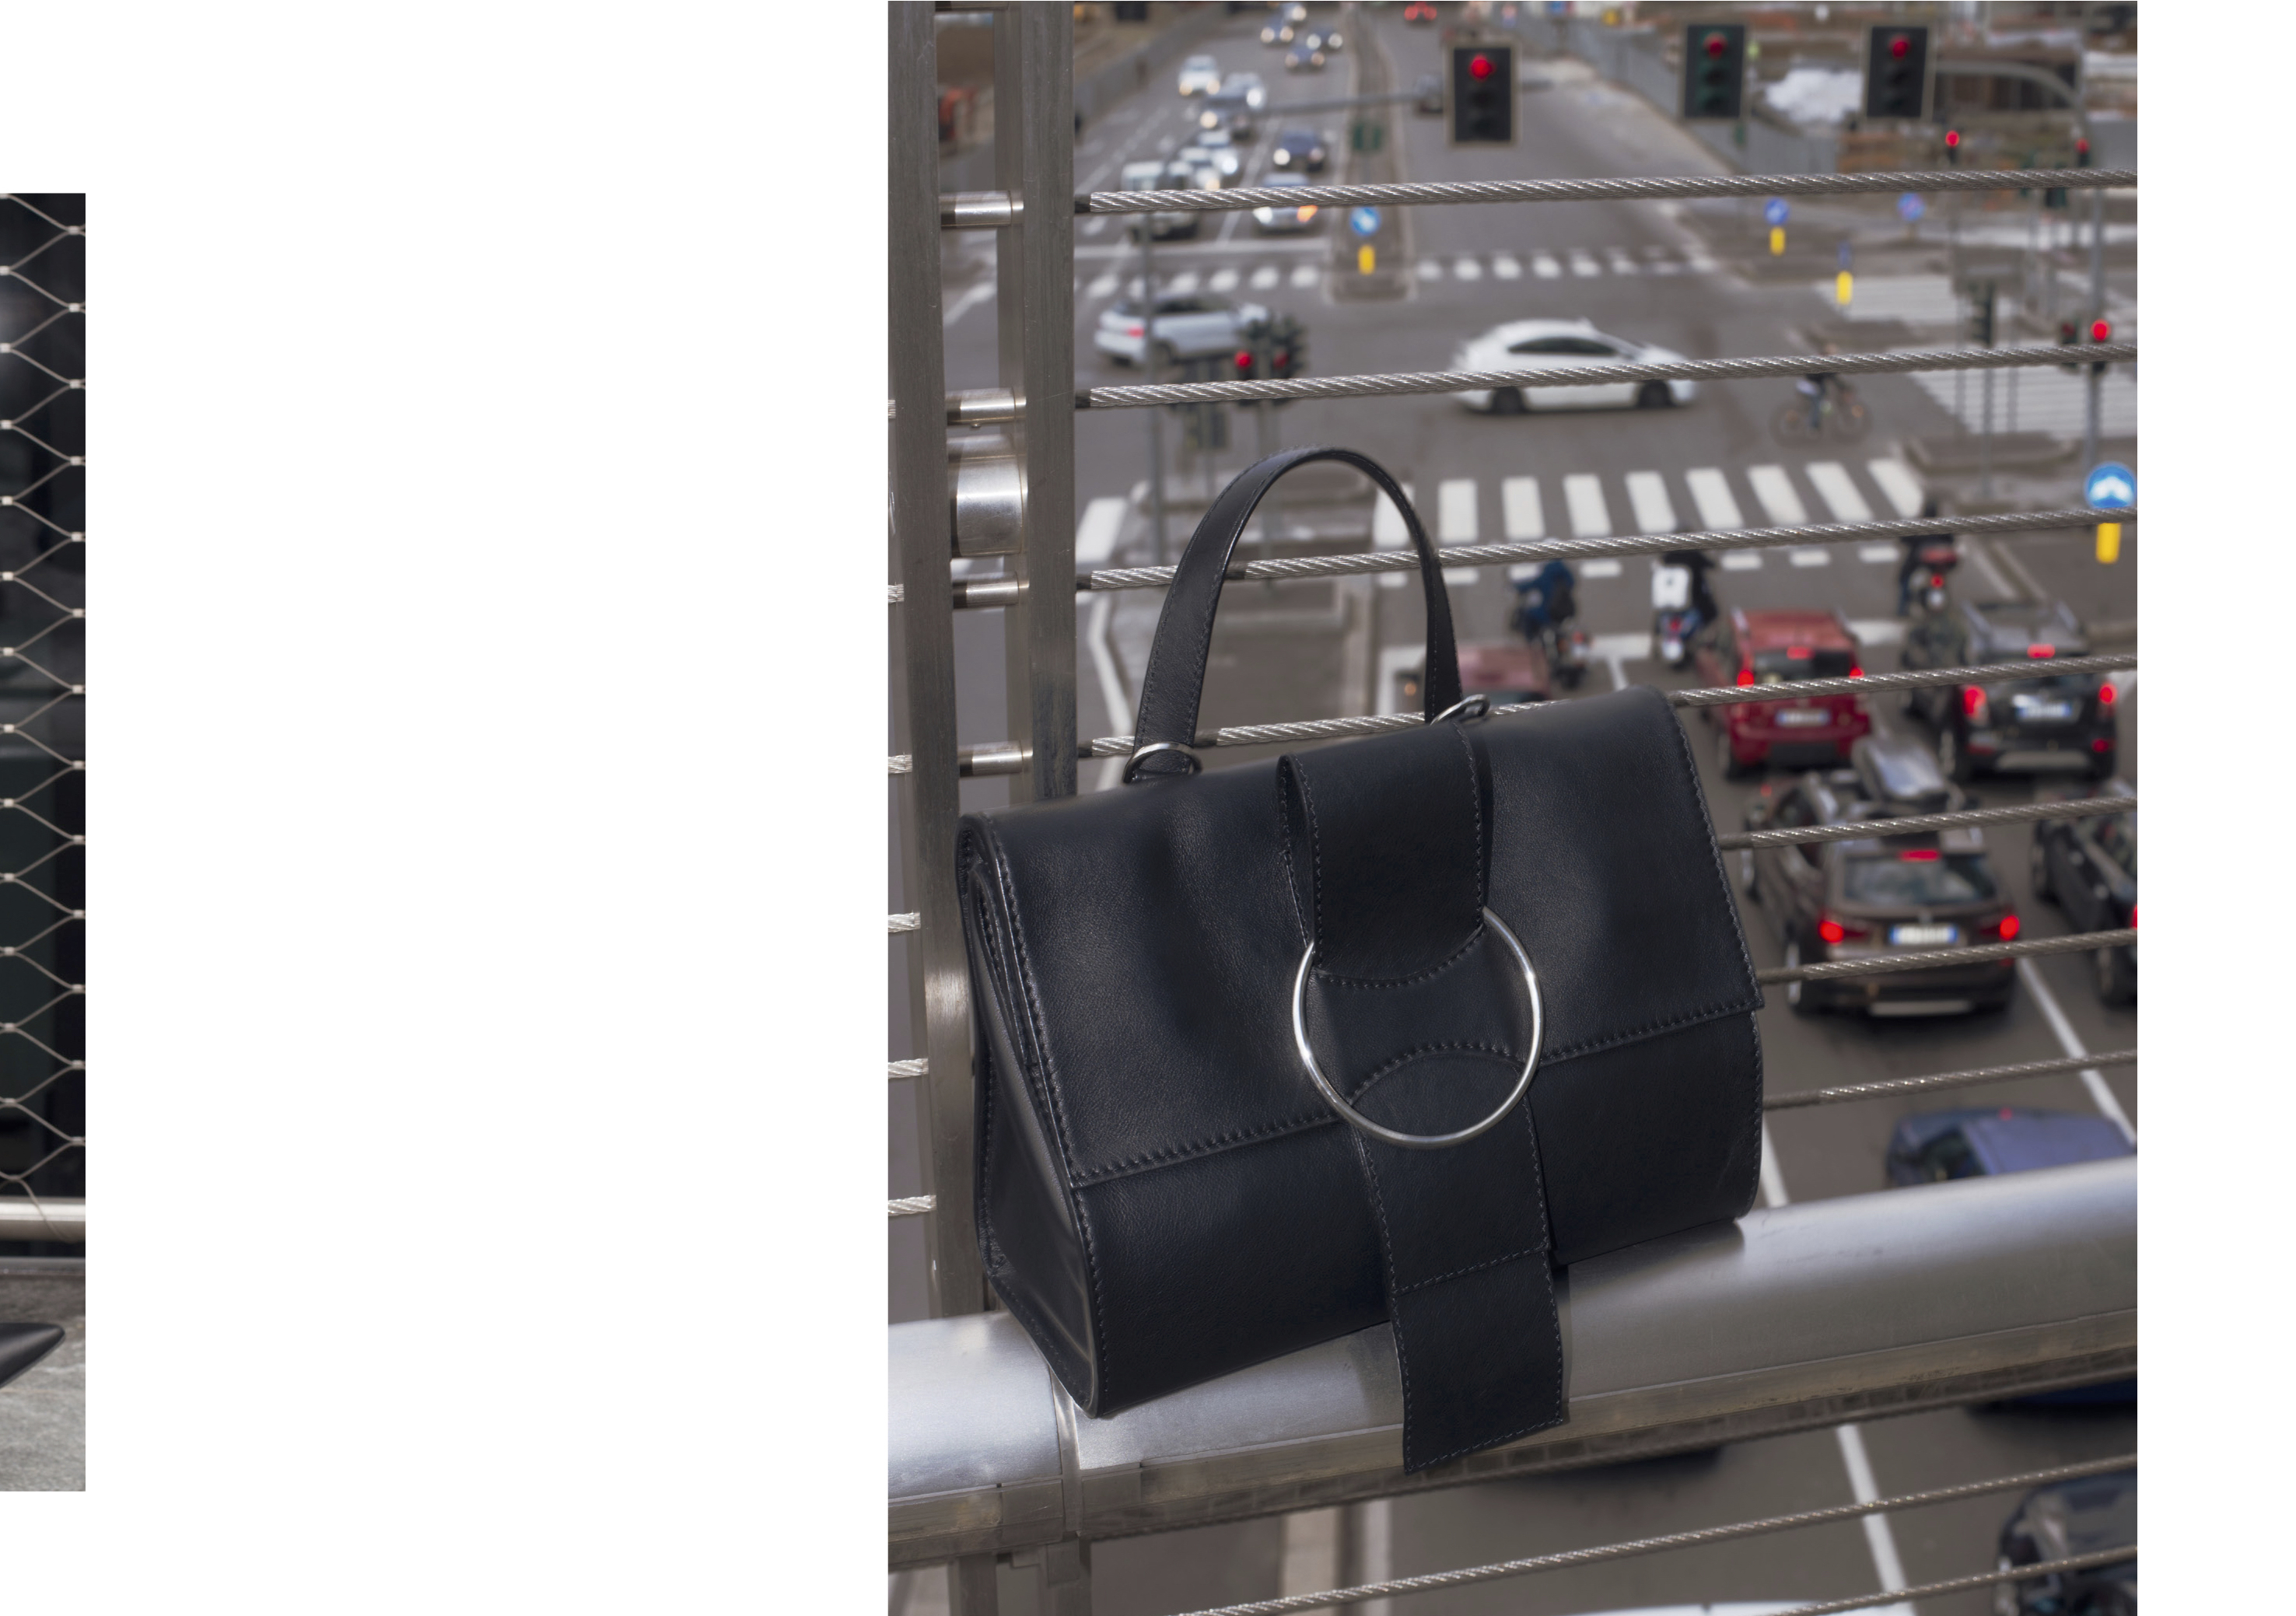 fw collection, ottonemilano handbag, ottonebag, ottonehandbag, ottonemilano bag, minimal handbag, sleek, ribbon strap, shoulder bag,top handle,oversize ring, blackbag, silver ring,tote bag, shopping